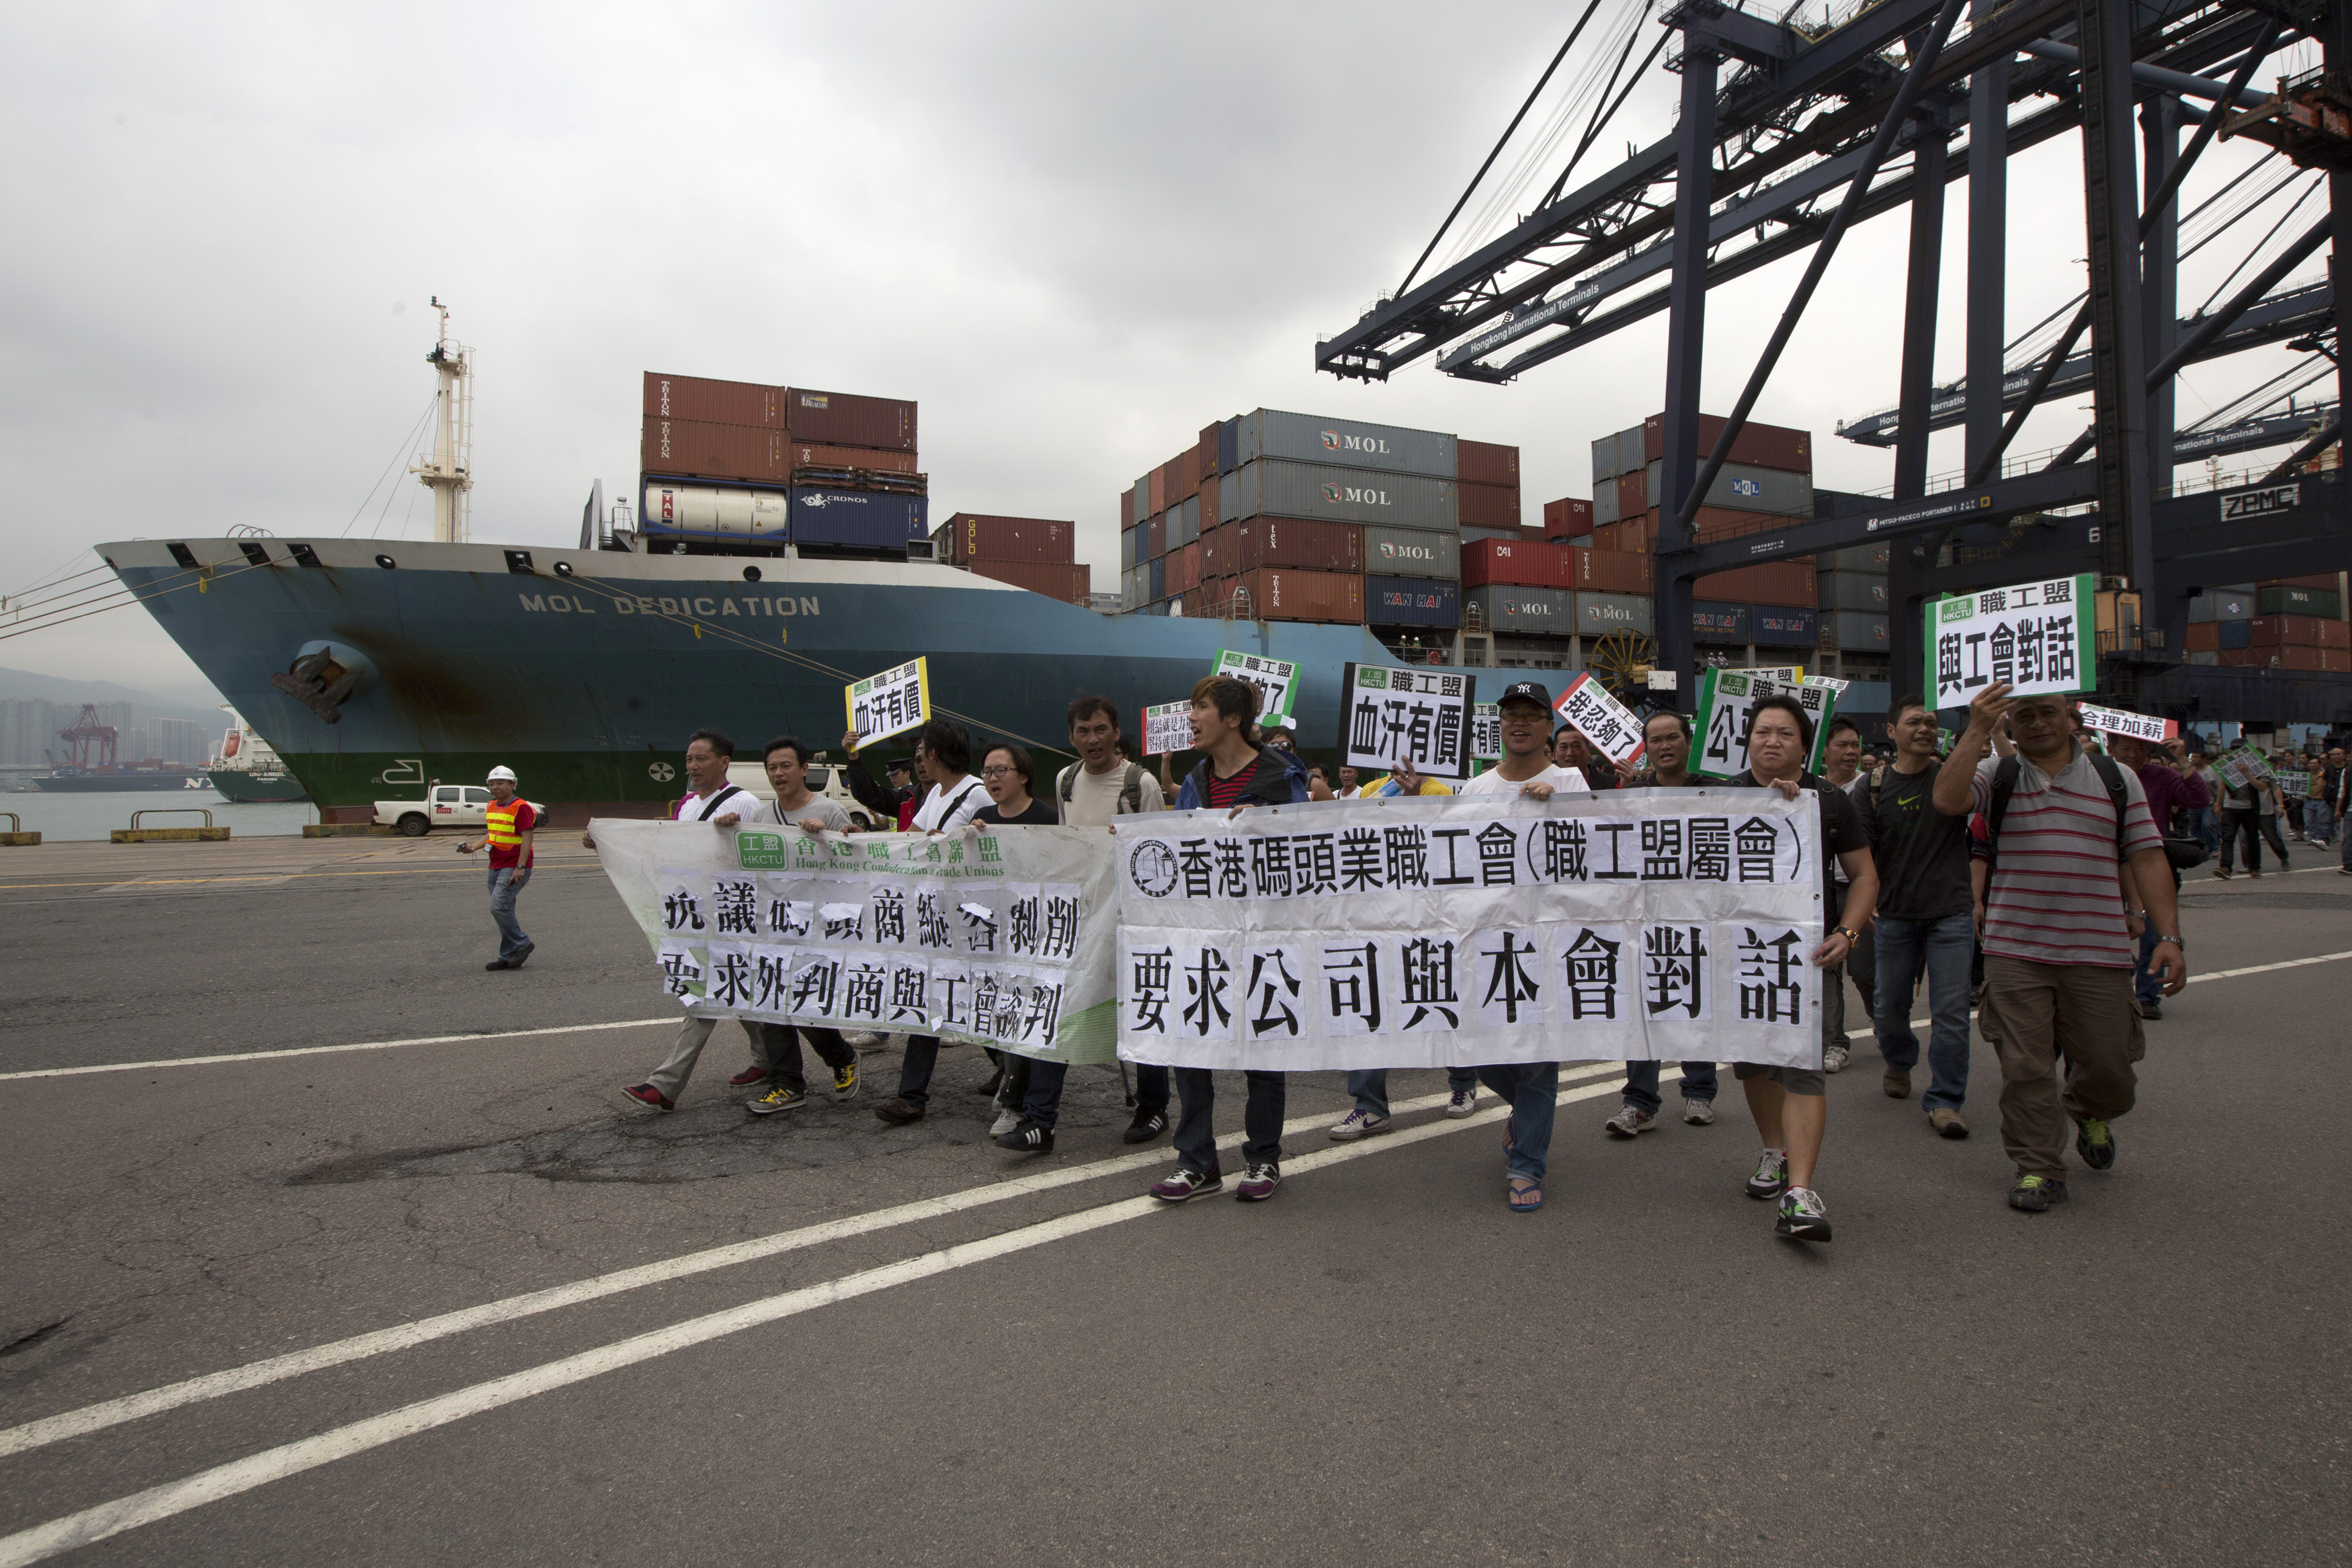 Dockworkers march during a strike at Kwai Chung container terminal, which is operated by Hong Kong International Terminals Ltd., in Hong Kong on March 29, 2013